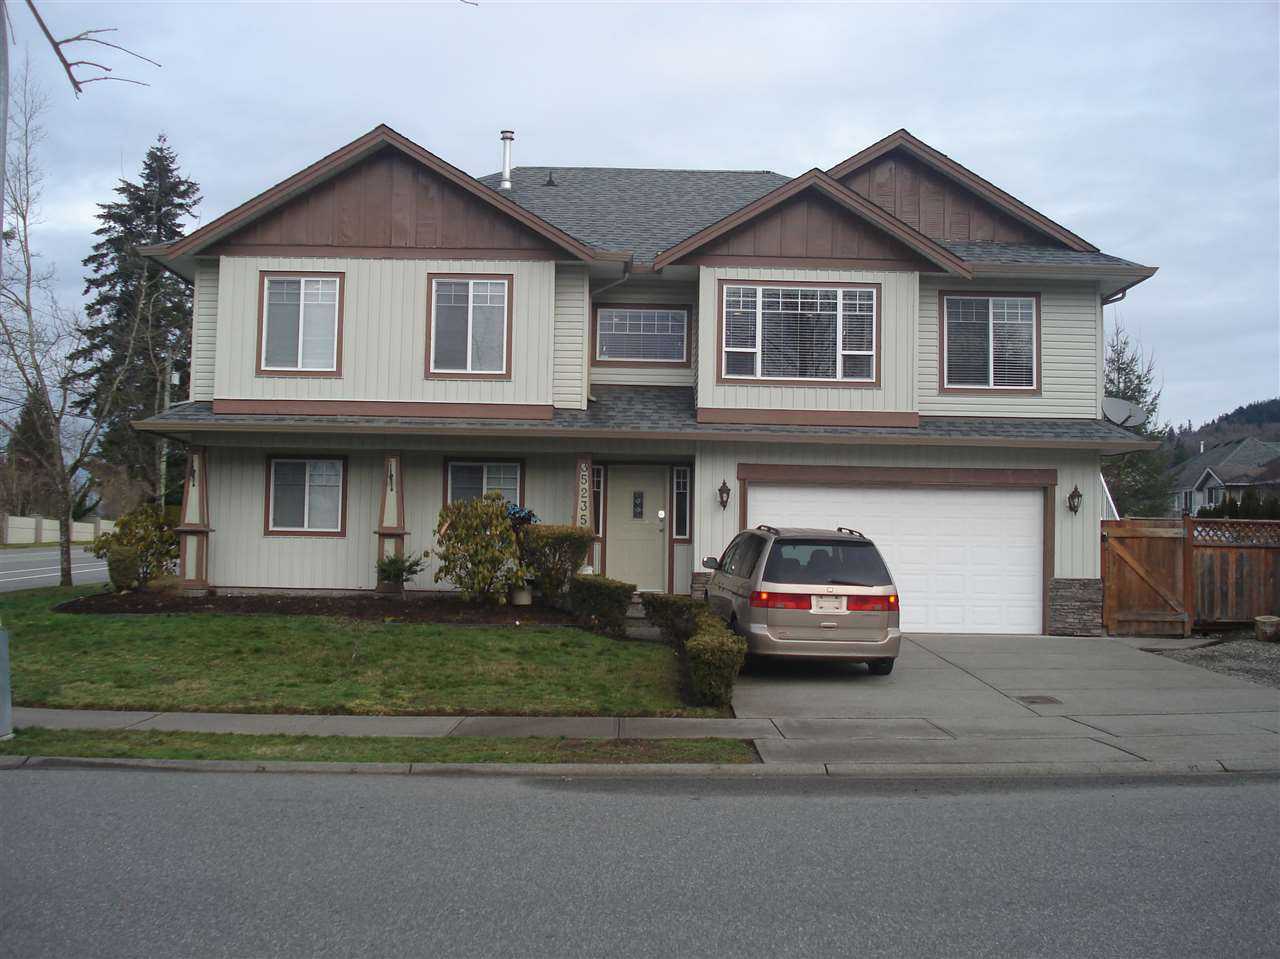 Main Photo: 35235 FIRDALE Avenue in Abbotsford: Abbotsford East House for sale : MLS®# R2031468